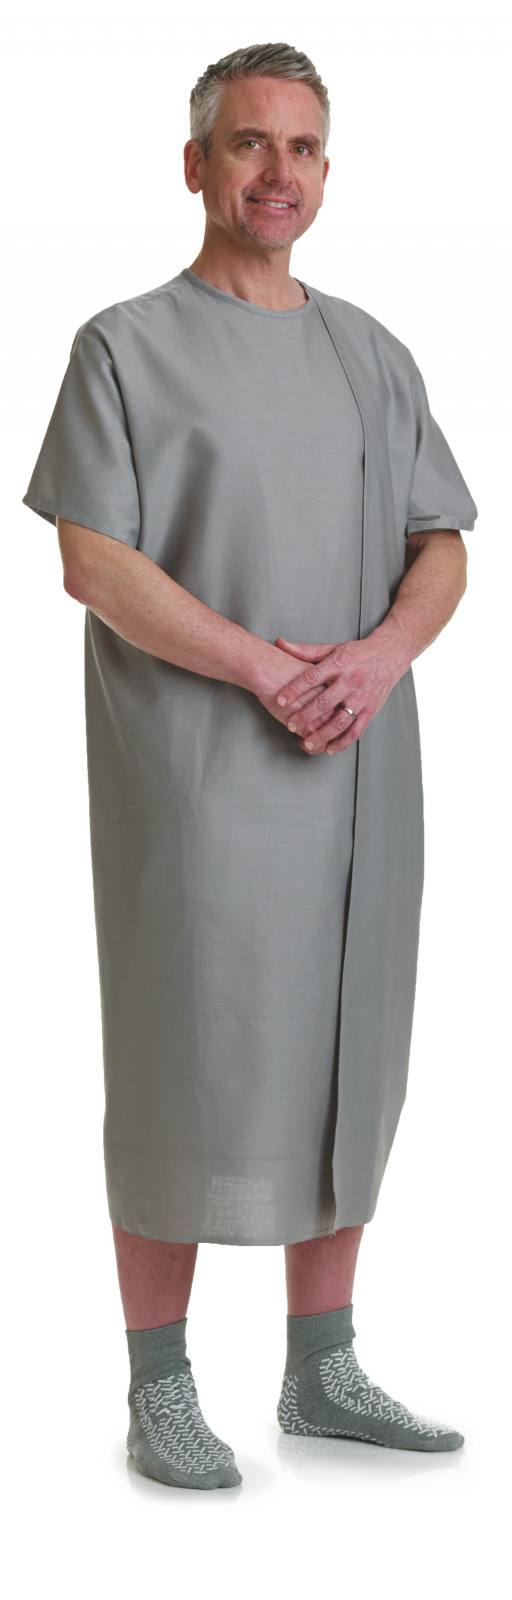 Medline THREE-ARMHOLE EXAMINATION GOWNS from Family Medical Supply